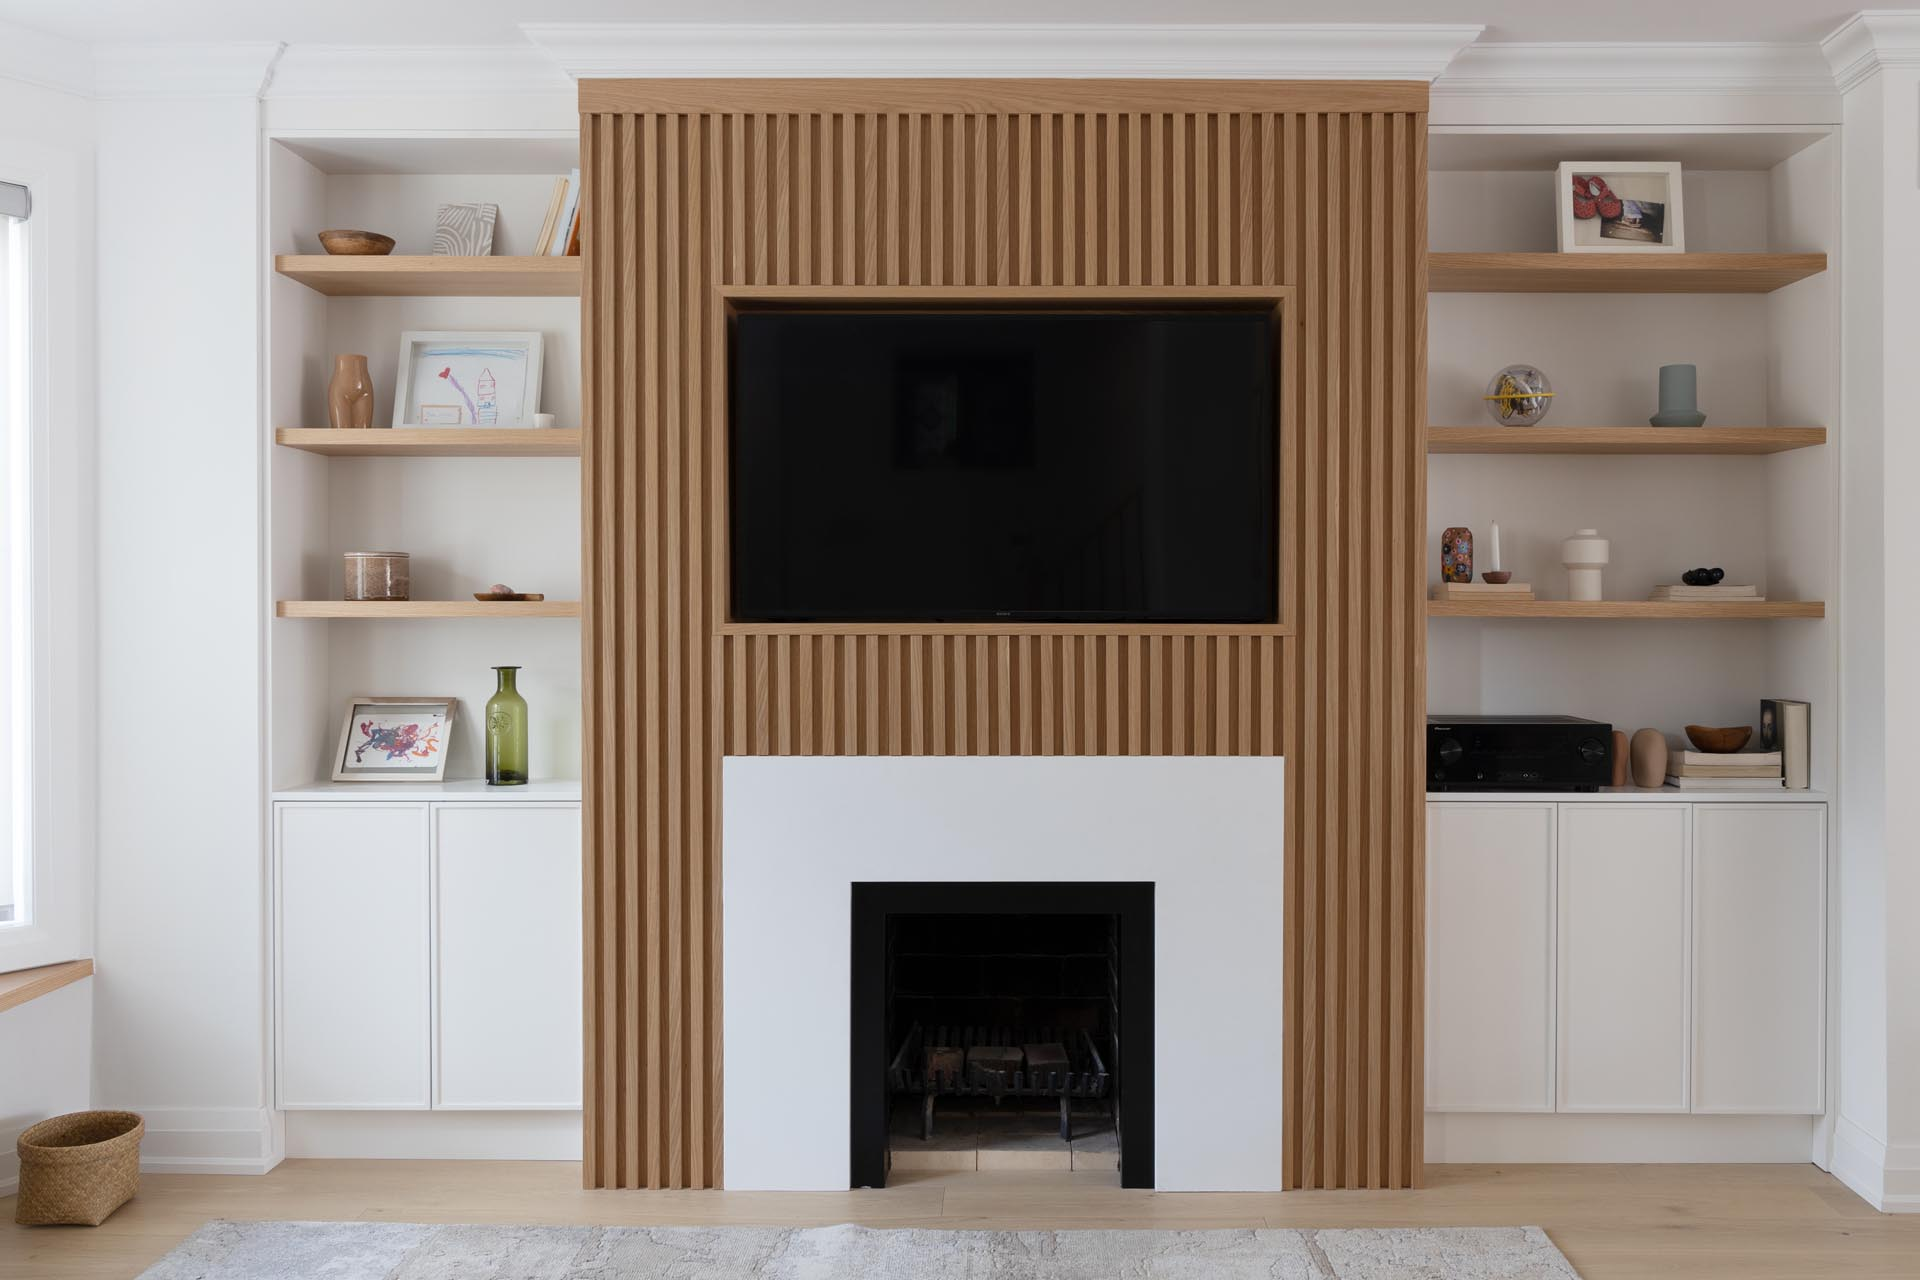 This living room wall has a Scandinavian-inspired design that includes a wood slatted wall that draws the eye, adds a sense of depth, and surrounds the television and fireplace.